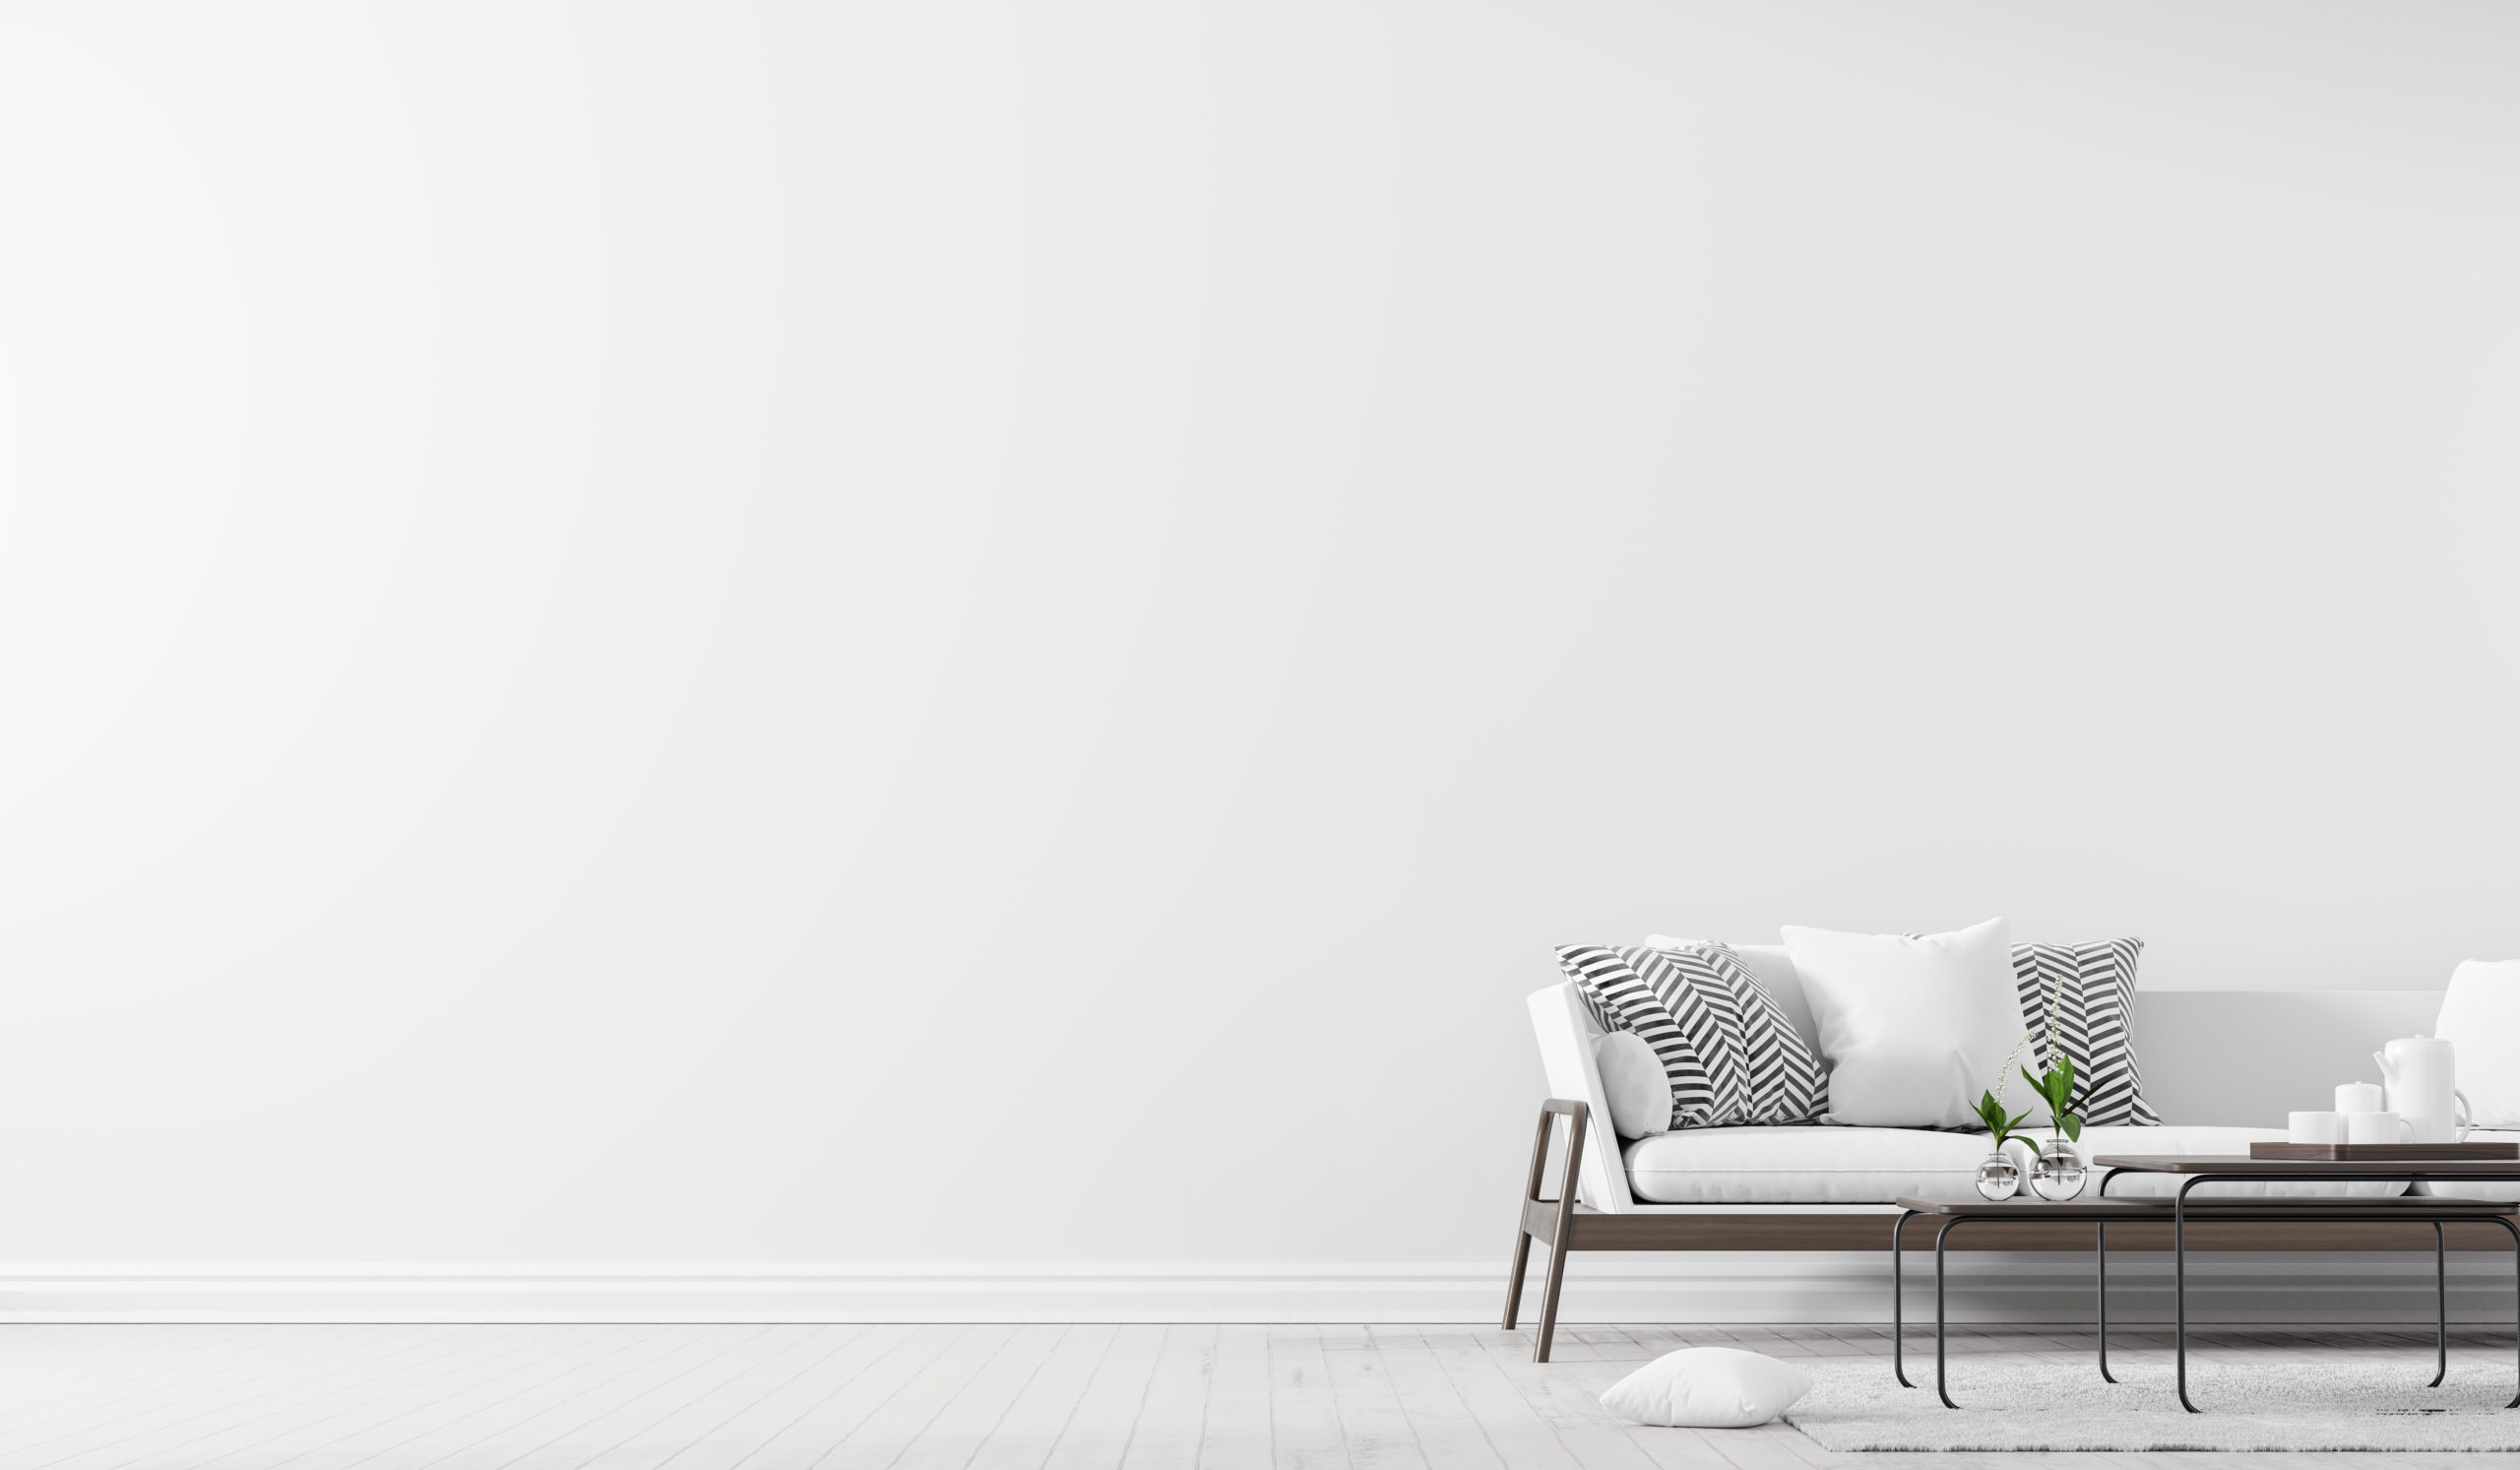 Scandinavian style interior with sofa and coffe table. Empty wall mock up in minimalist interior. 3D illustration.